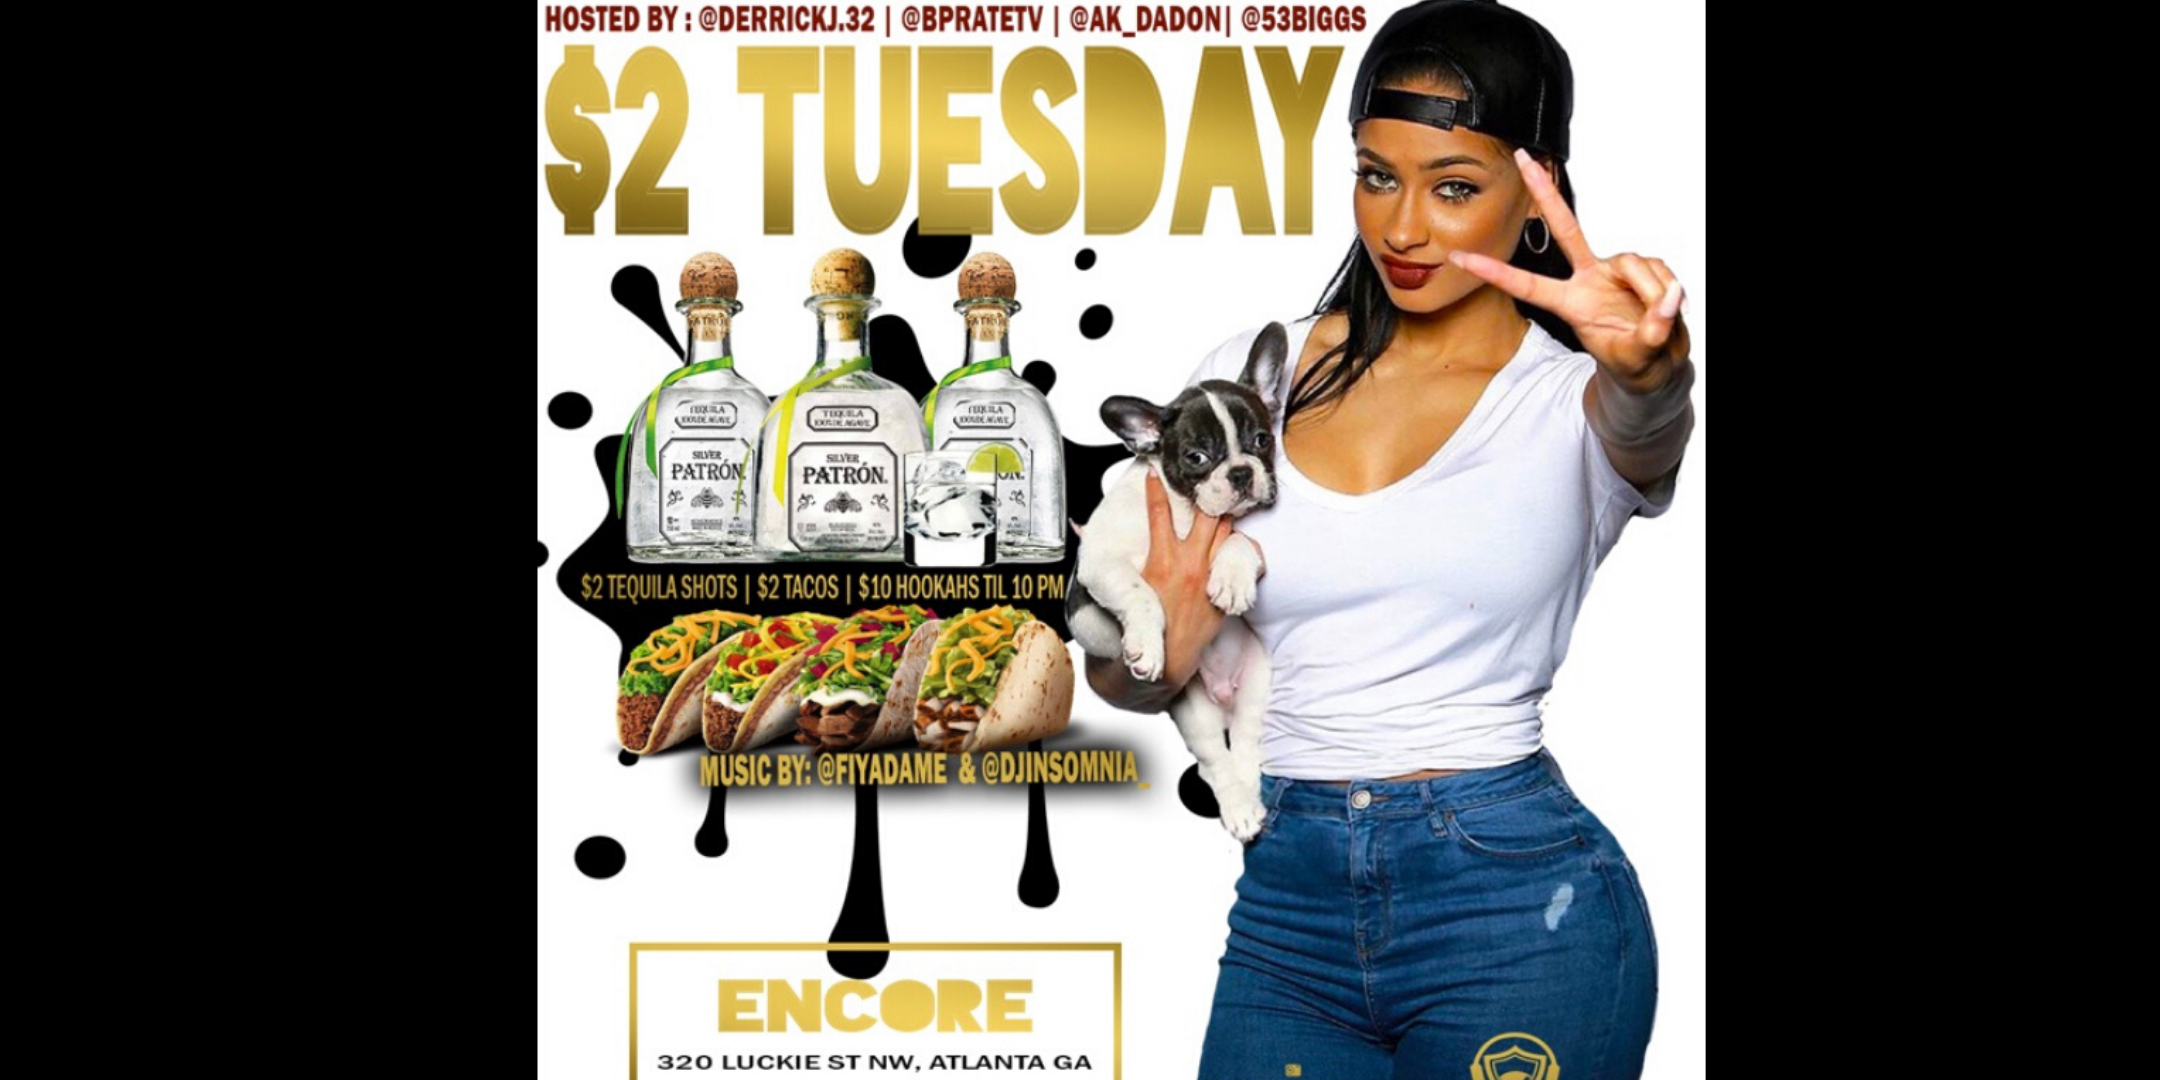 The BEST $2 Tuesday in the City feat $2 Tacos and MORE @Encoreatl